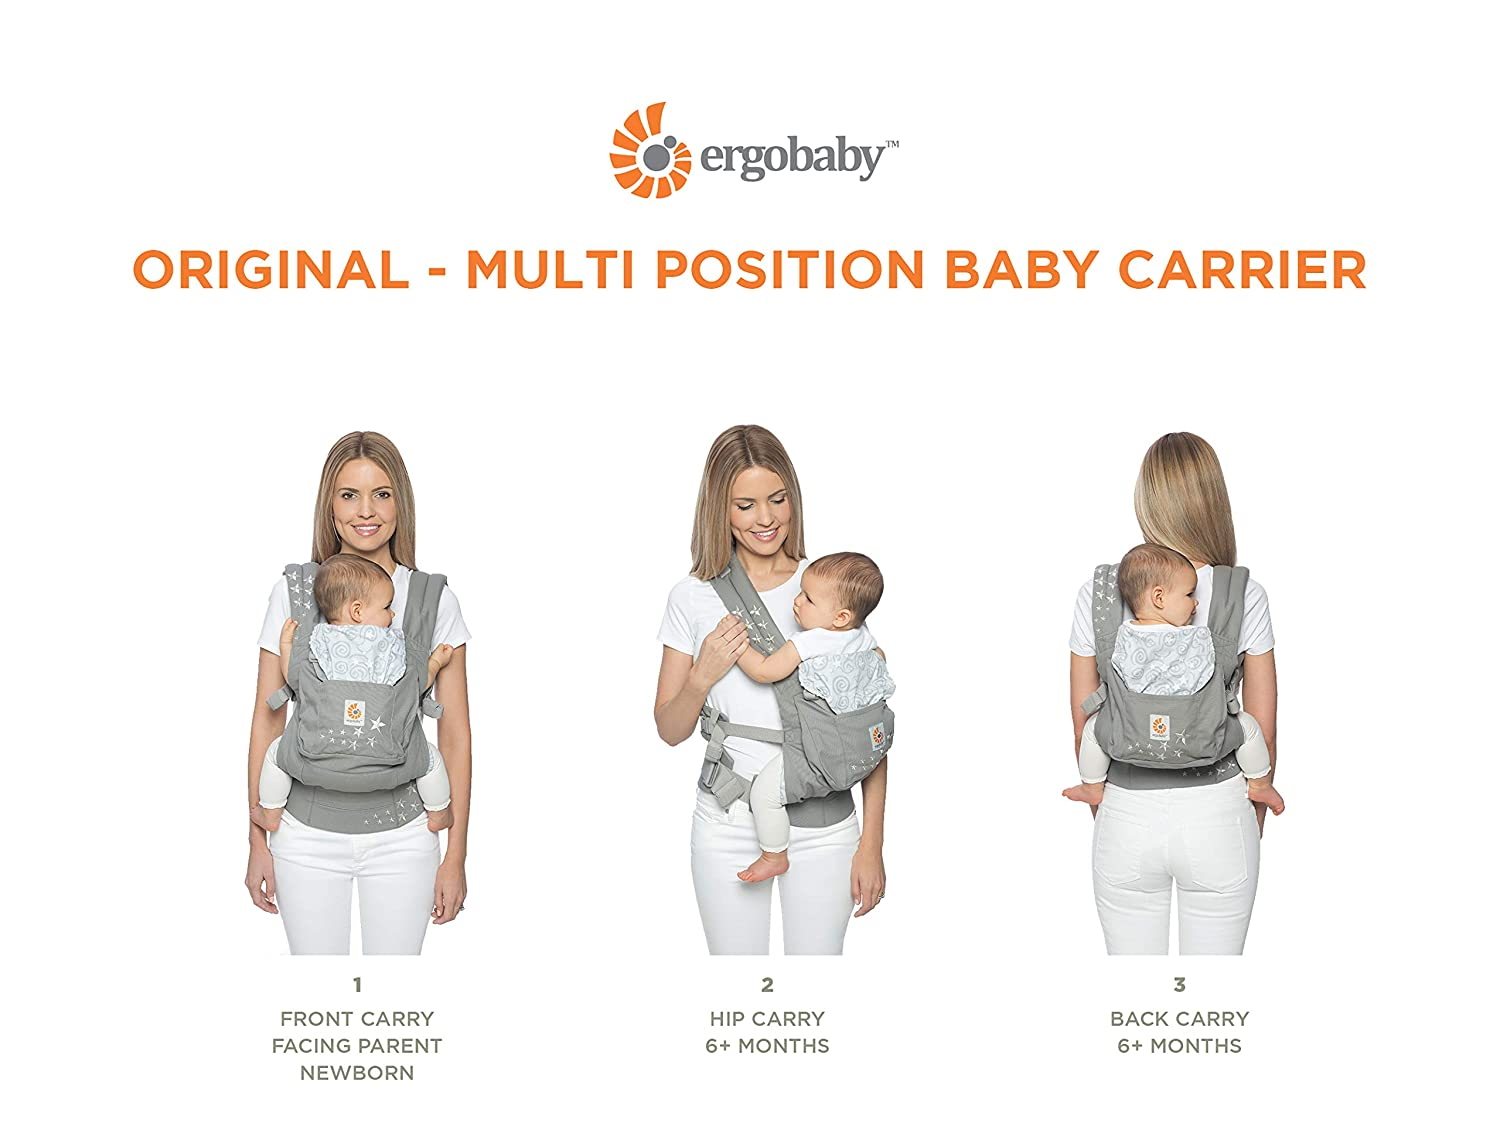 ergobaby performance positions